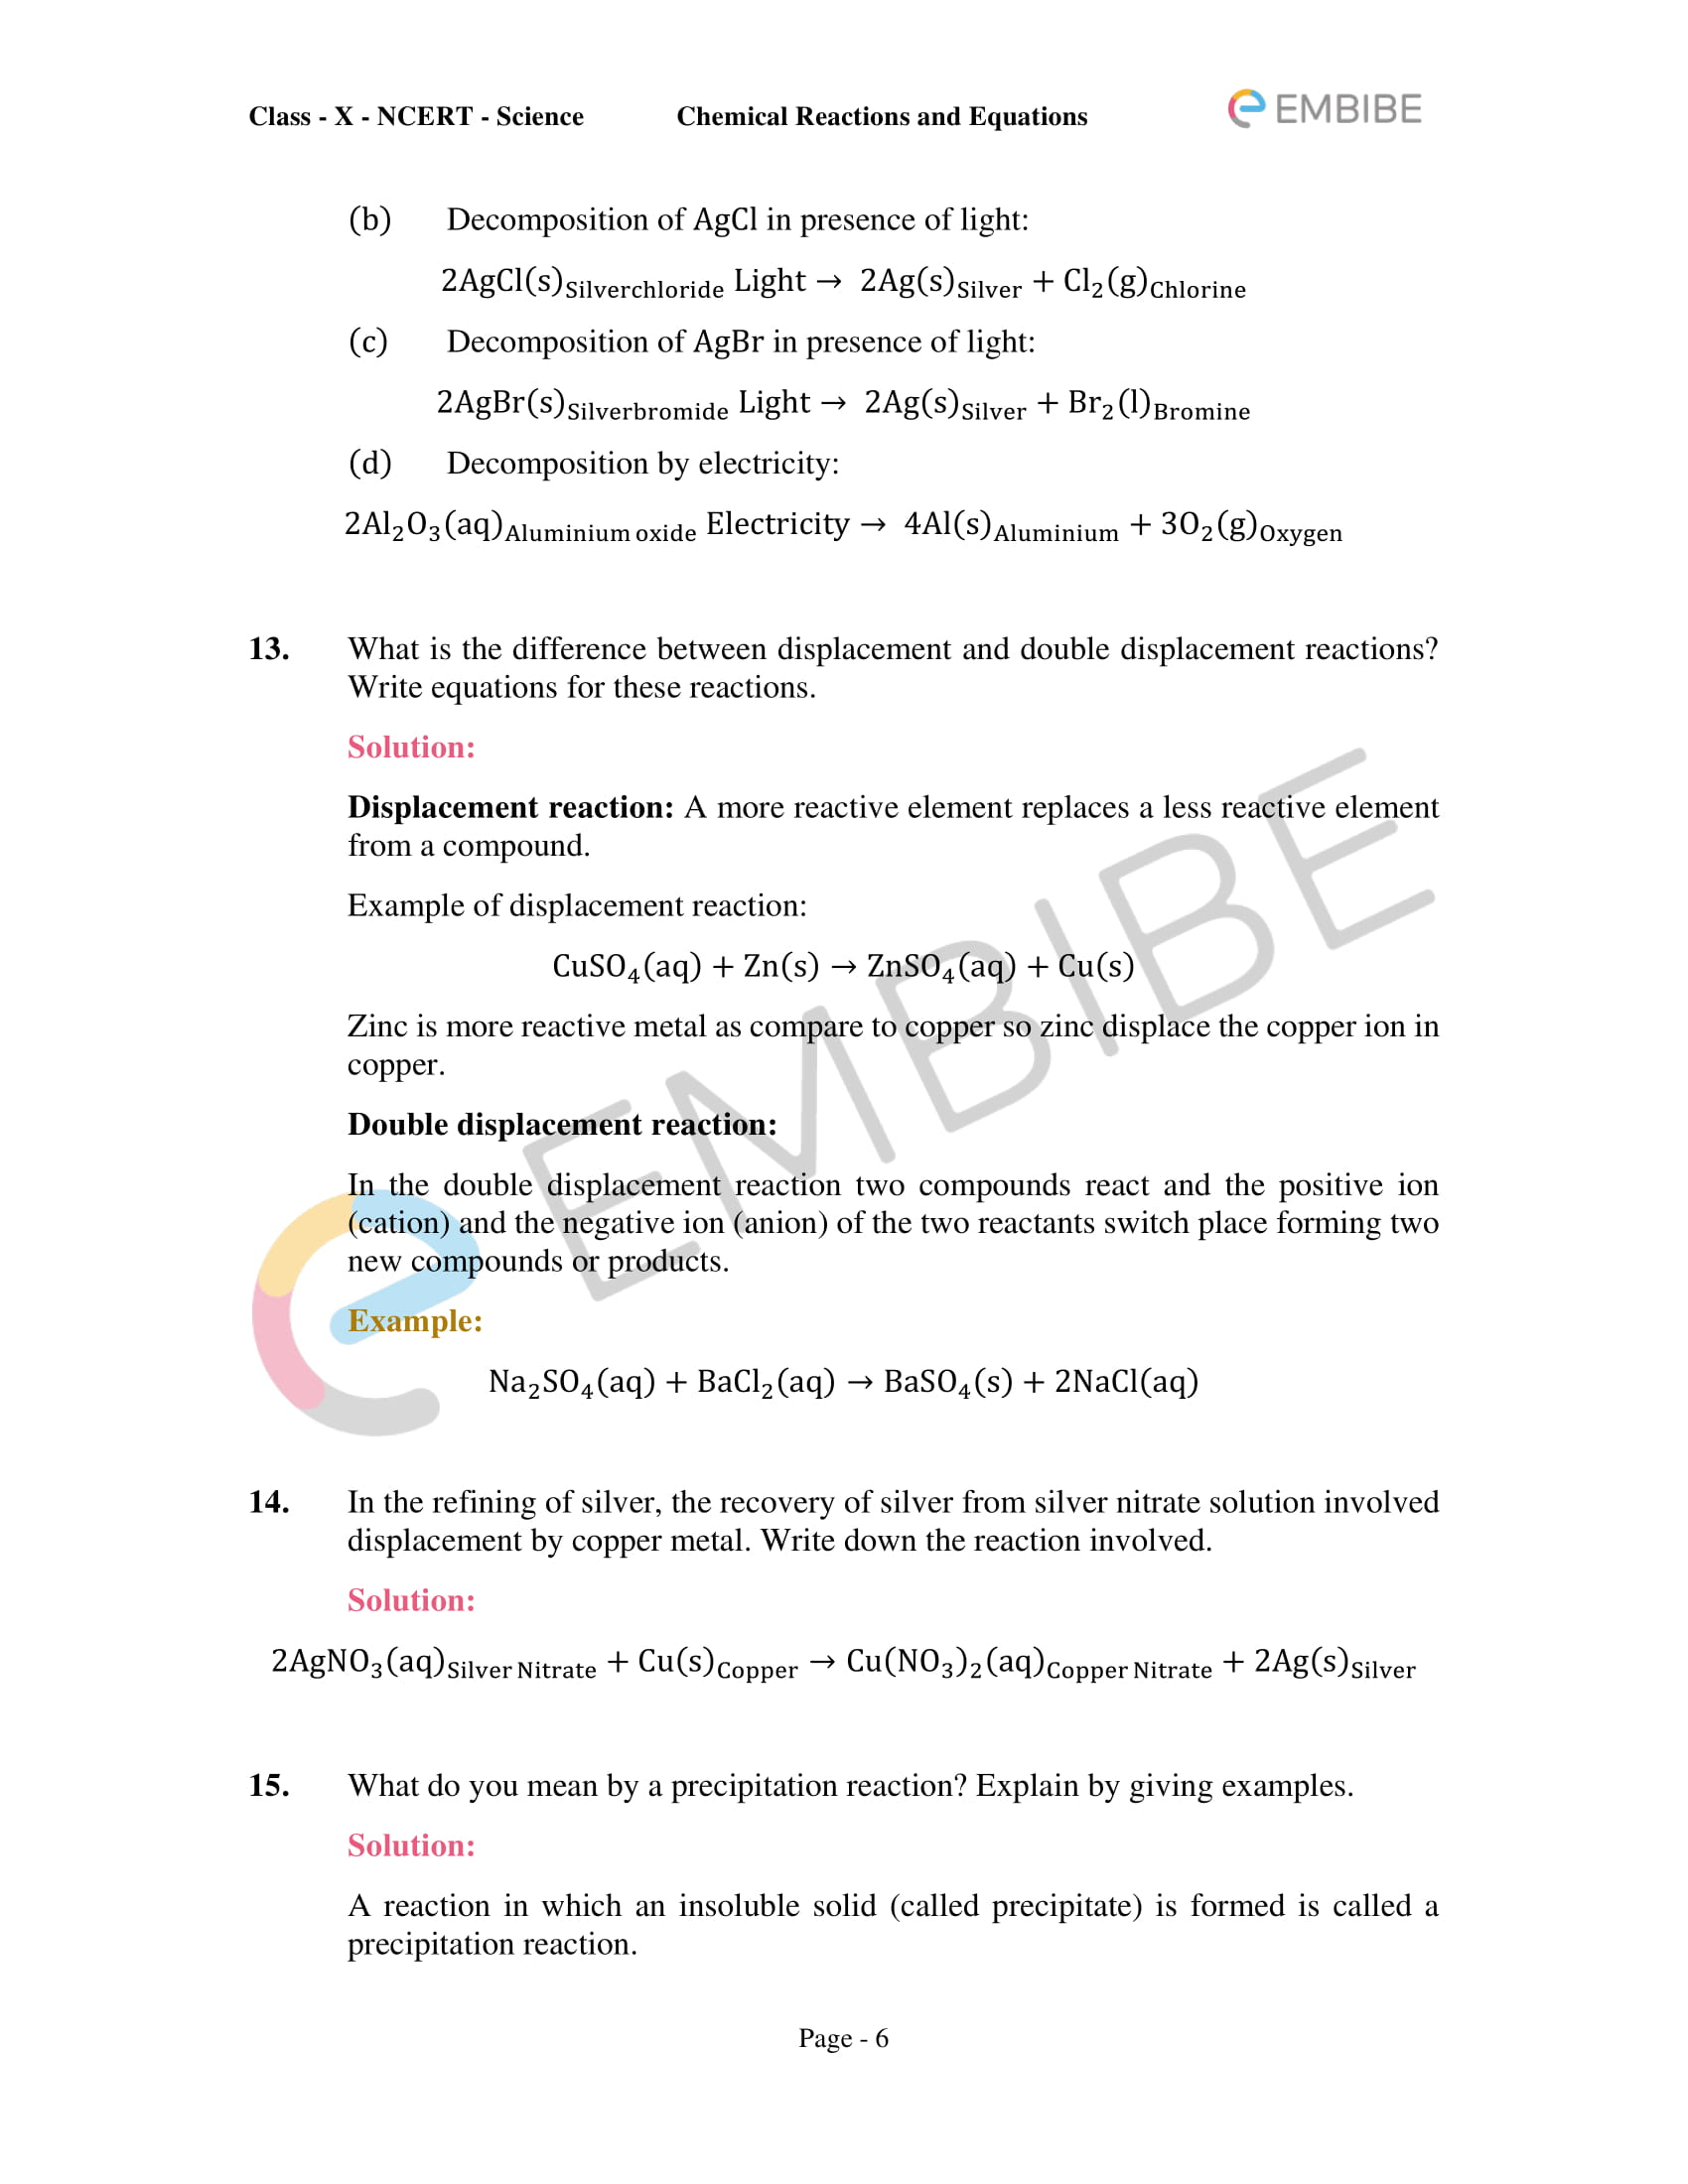 CBSE NCERT Solutions for Class 10 Science Chapter 1: Chemical Reactions And Equations-6